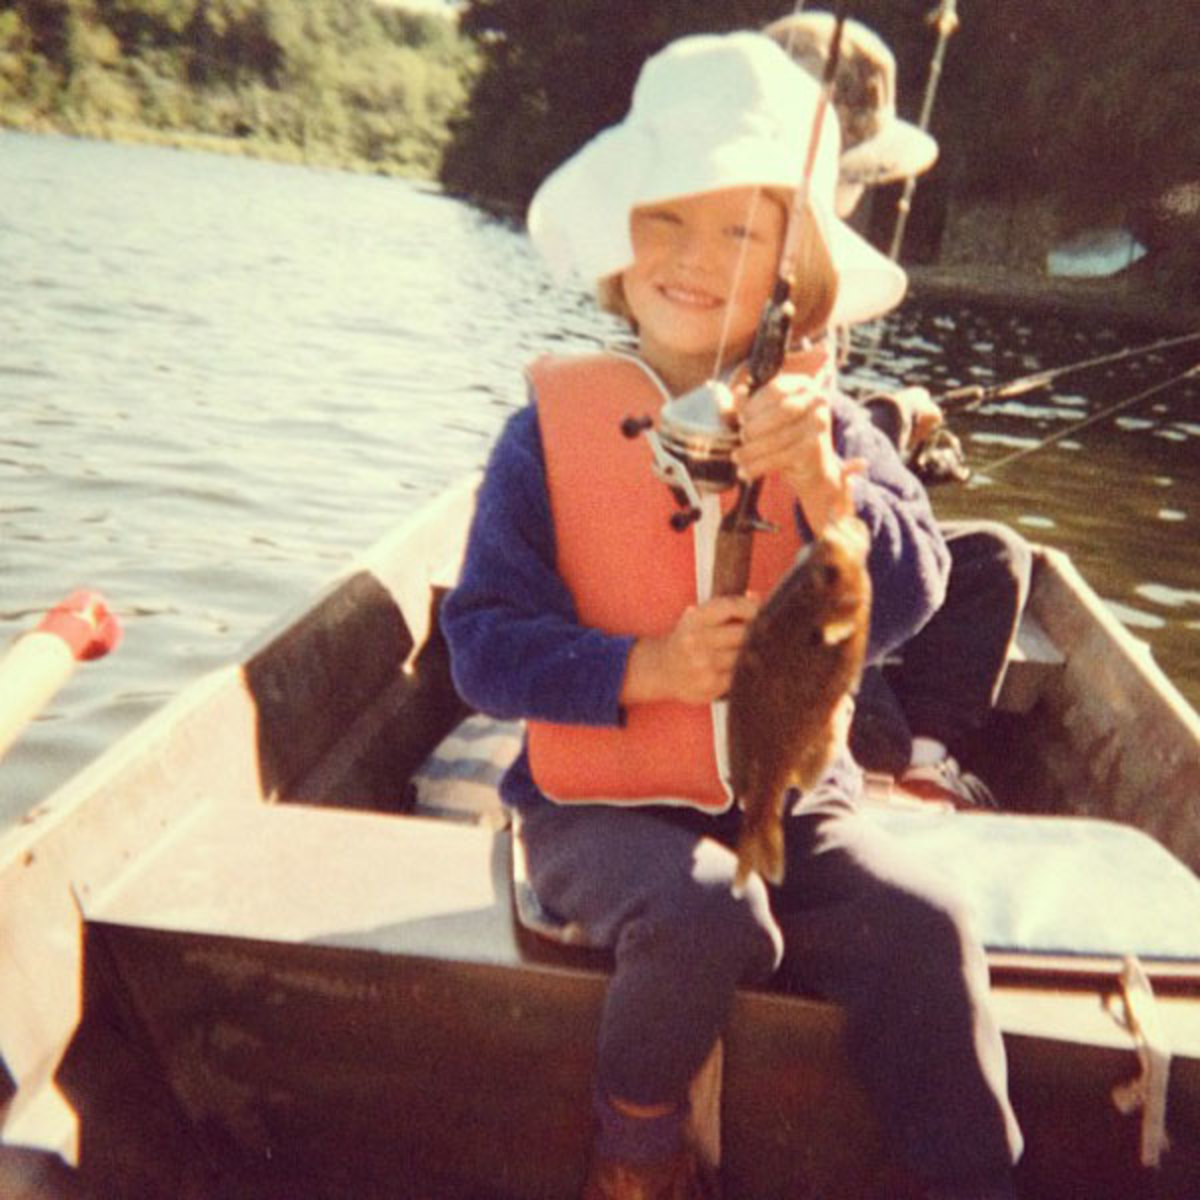 (young) Emily fishing with her dad :: @emilydidonato1